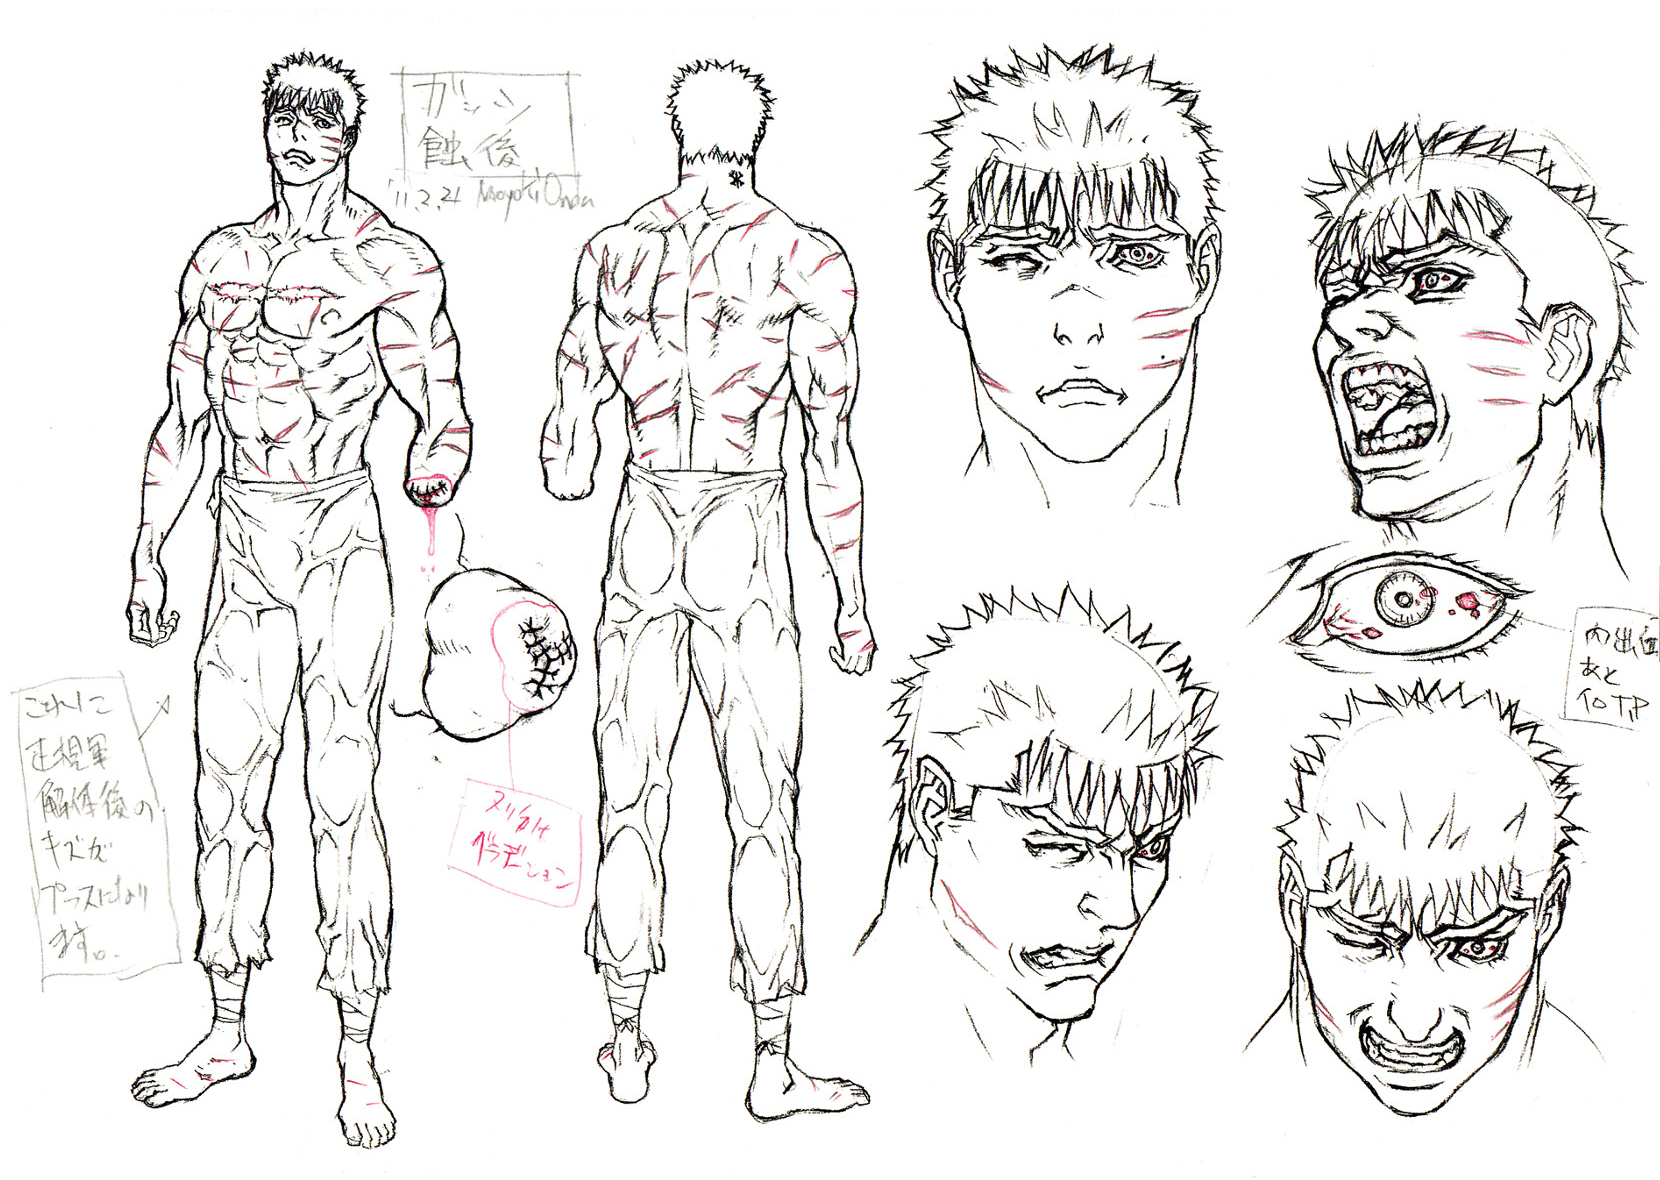 Art of Berserk  - 13.jpg